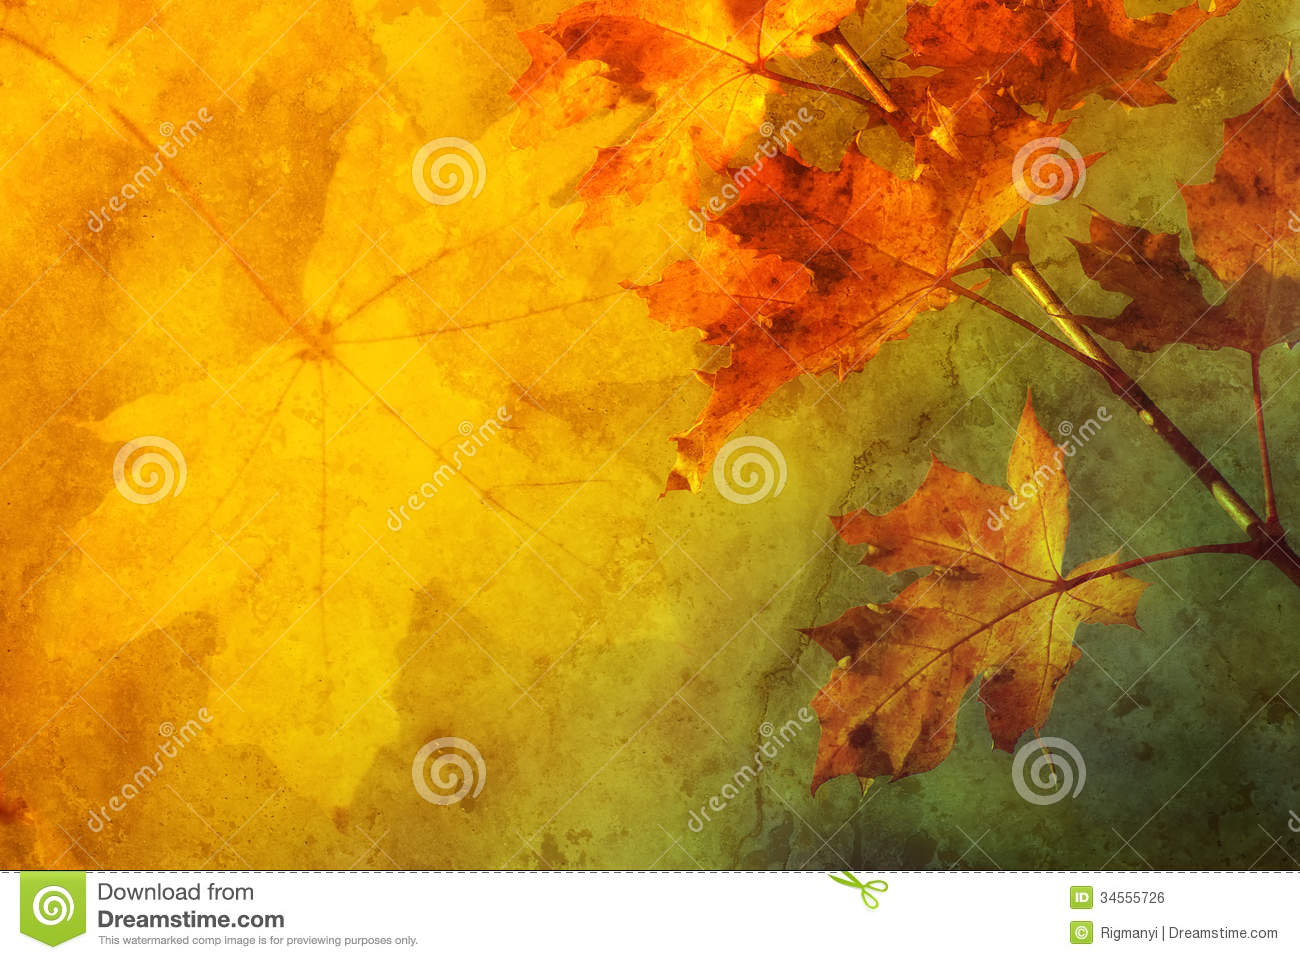 Free Falling Leaves Live Wallpaper Autumn Abstract Royalty Free Stock Image Image 34555726